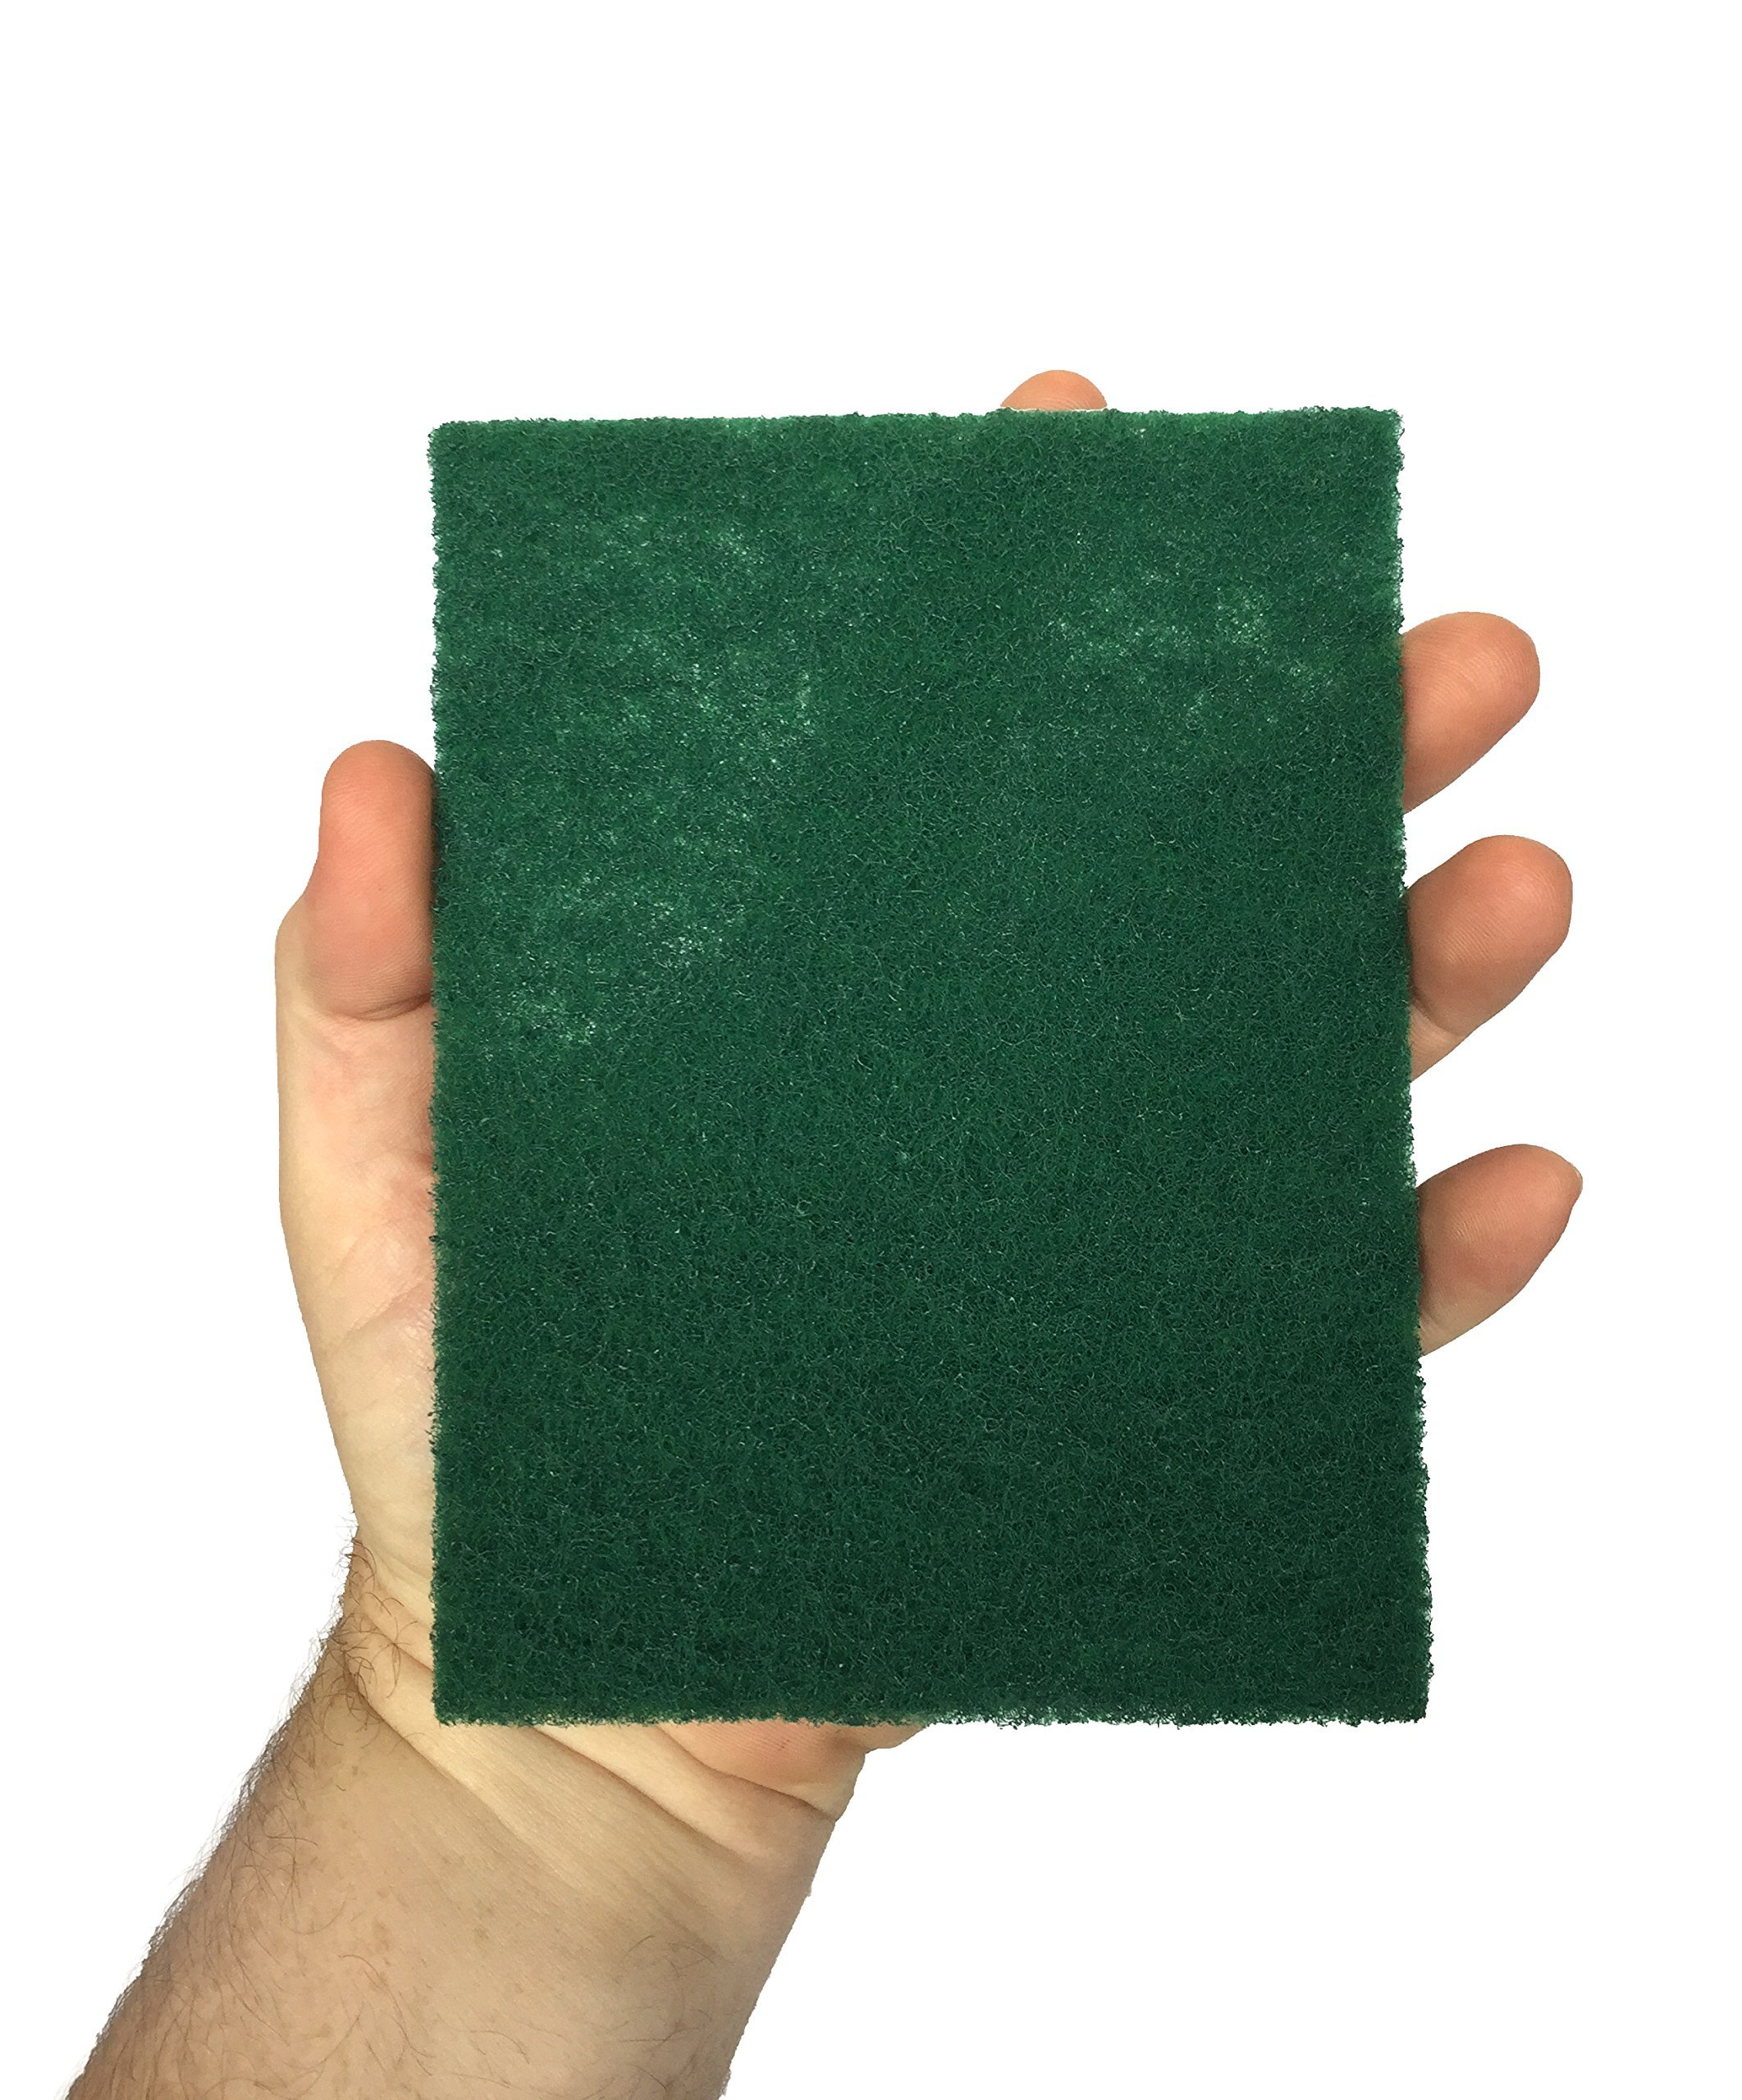 HeRO Dish Scrubber Scouring Pads - Household Scrub Pads for Stove Top Cleaner and Kitchen Scrubbers for Dishes, Cuts Solvents & Greasy Messes, Green 4.5 x 6 inch (Pack of 40)          by HERO IMPORTS (Image #4)